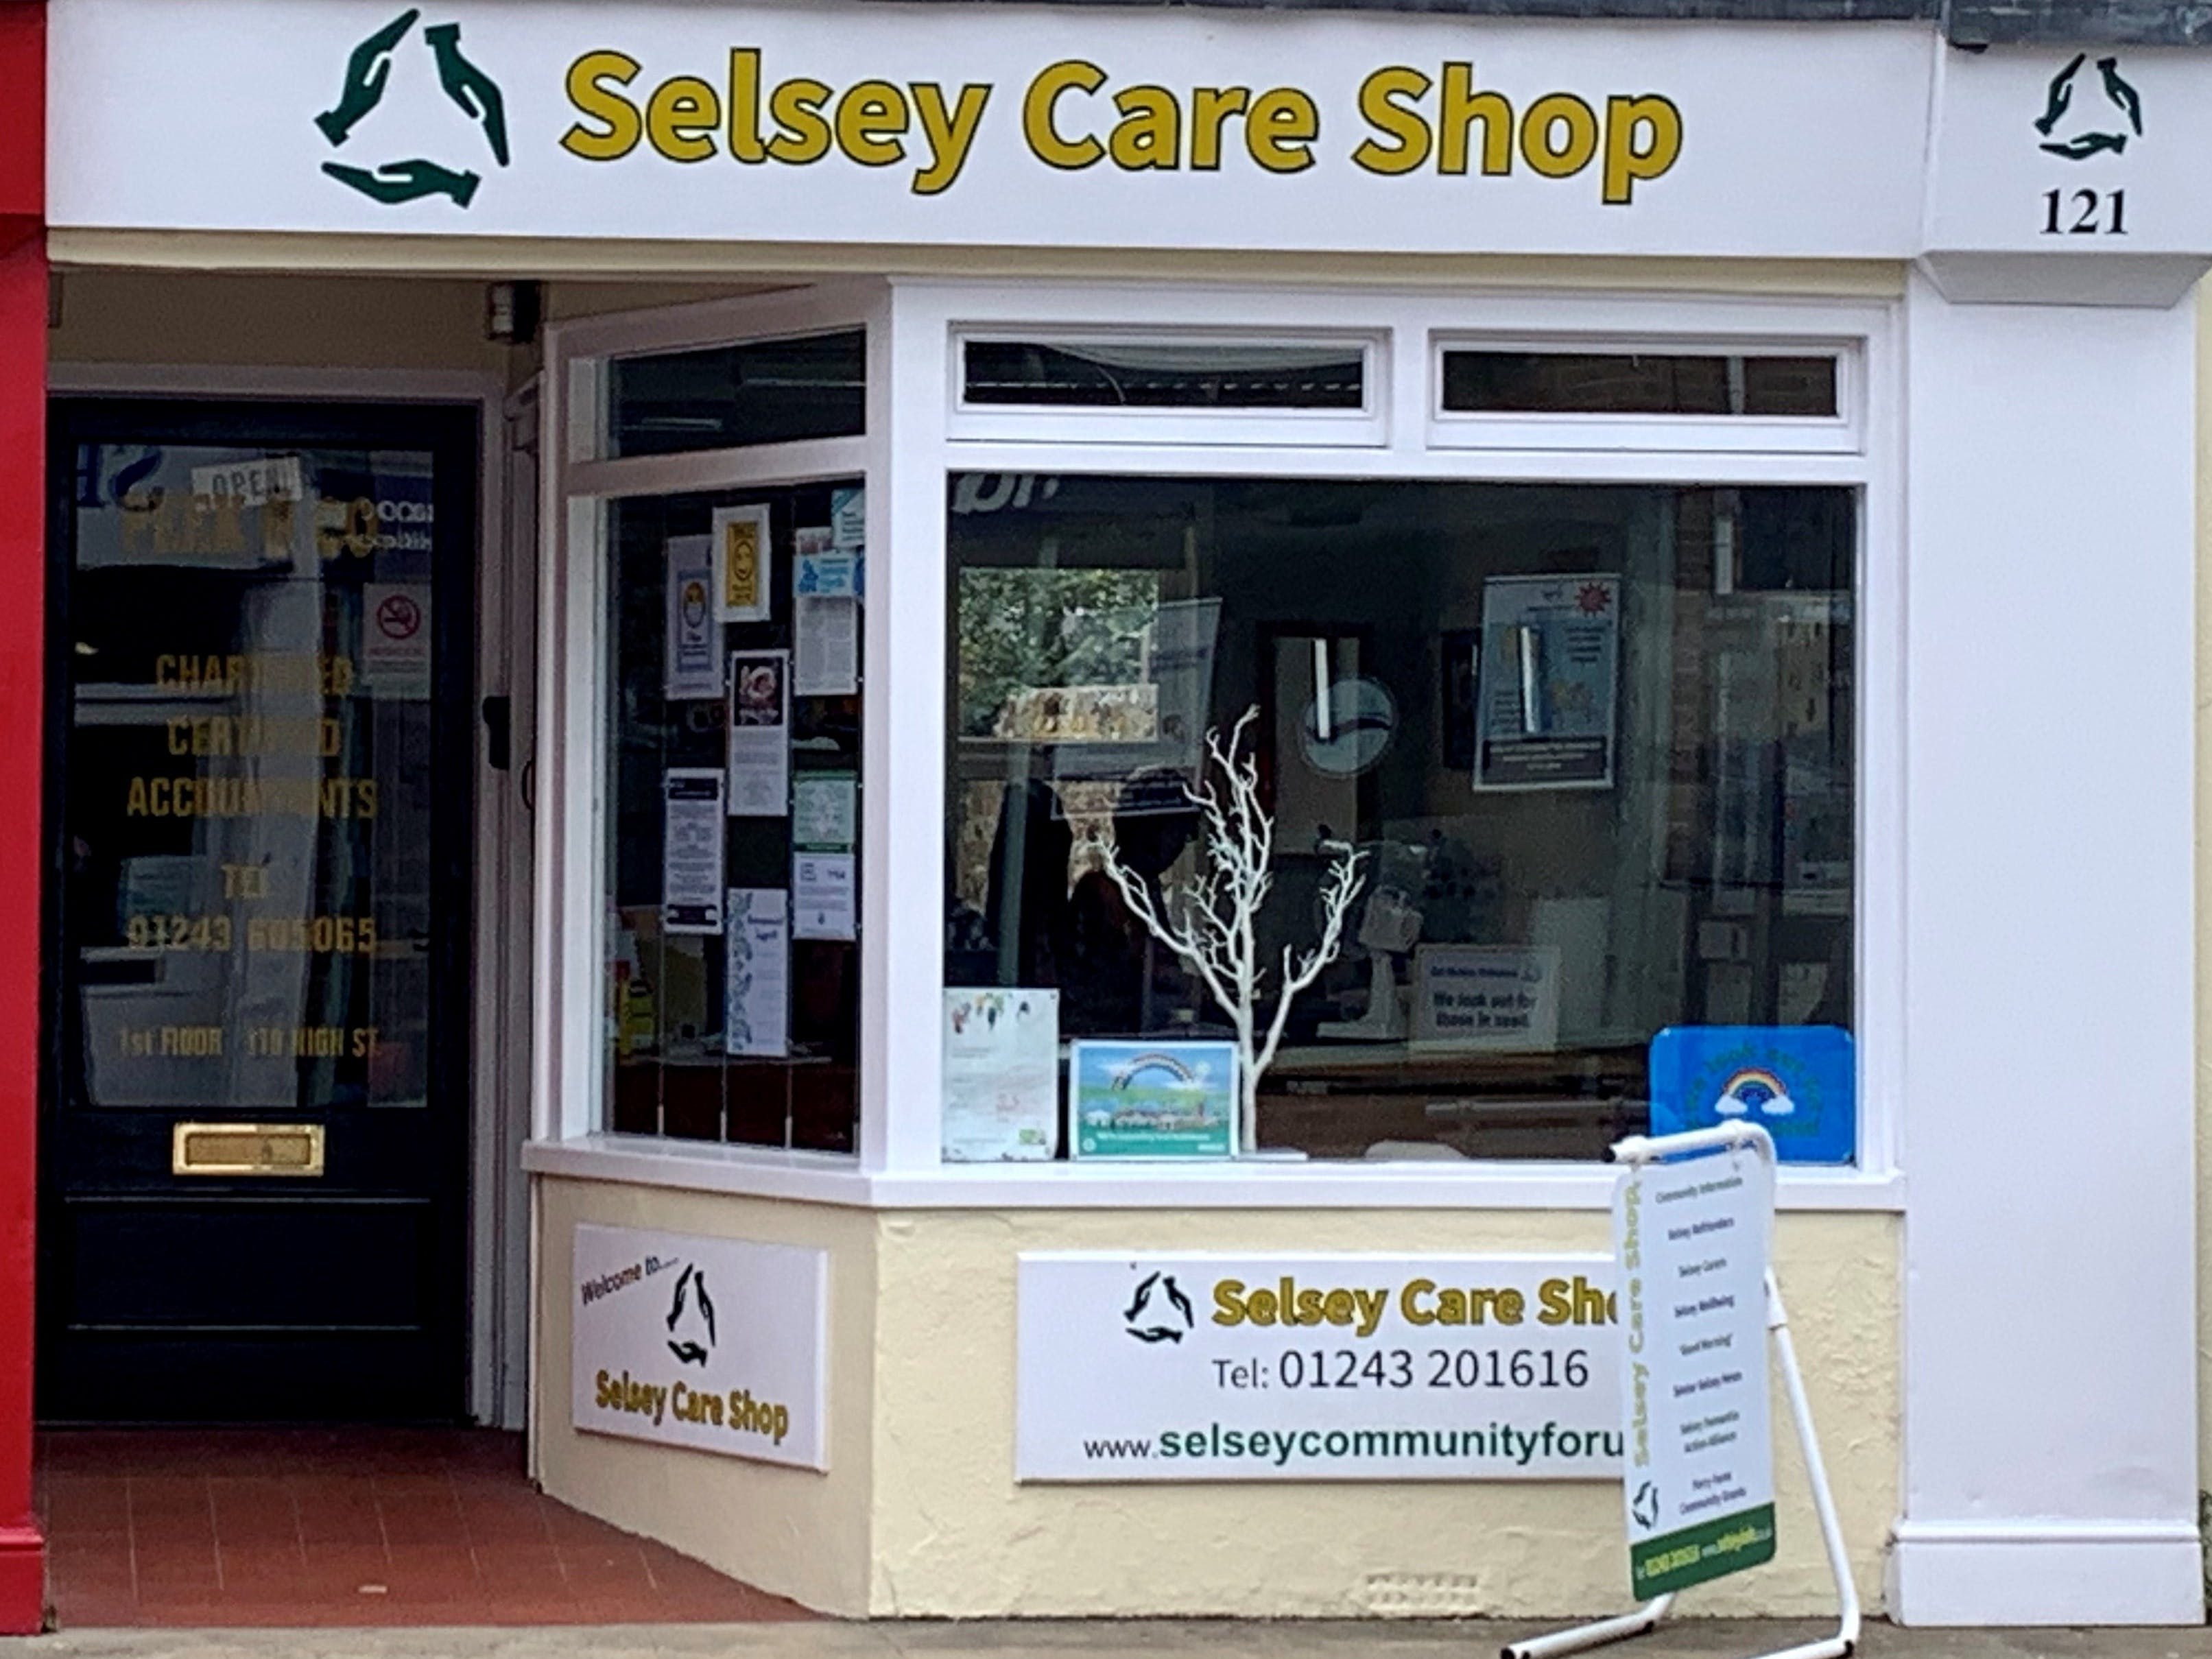 Selsey Care Shop